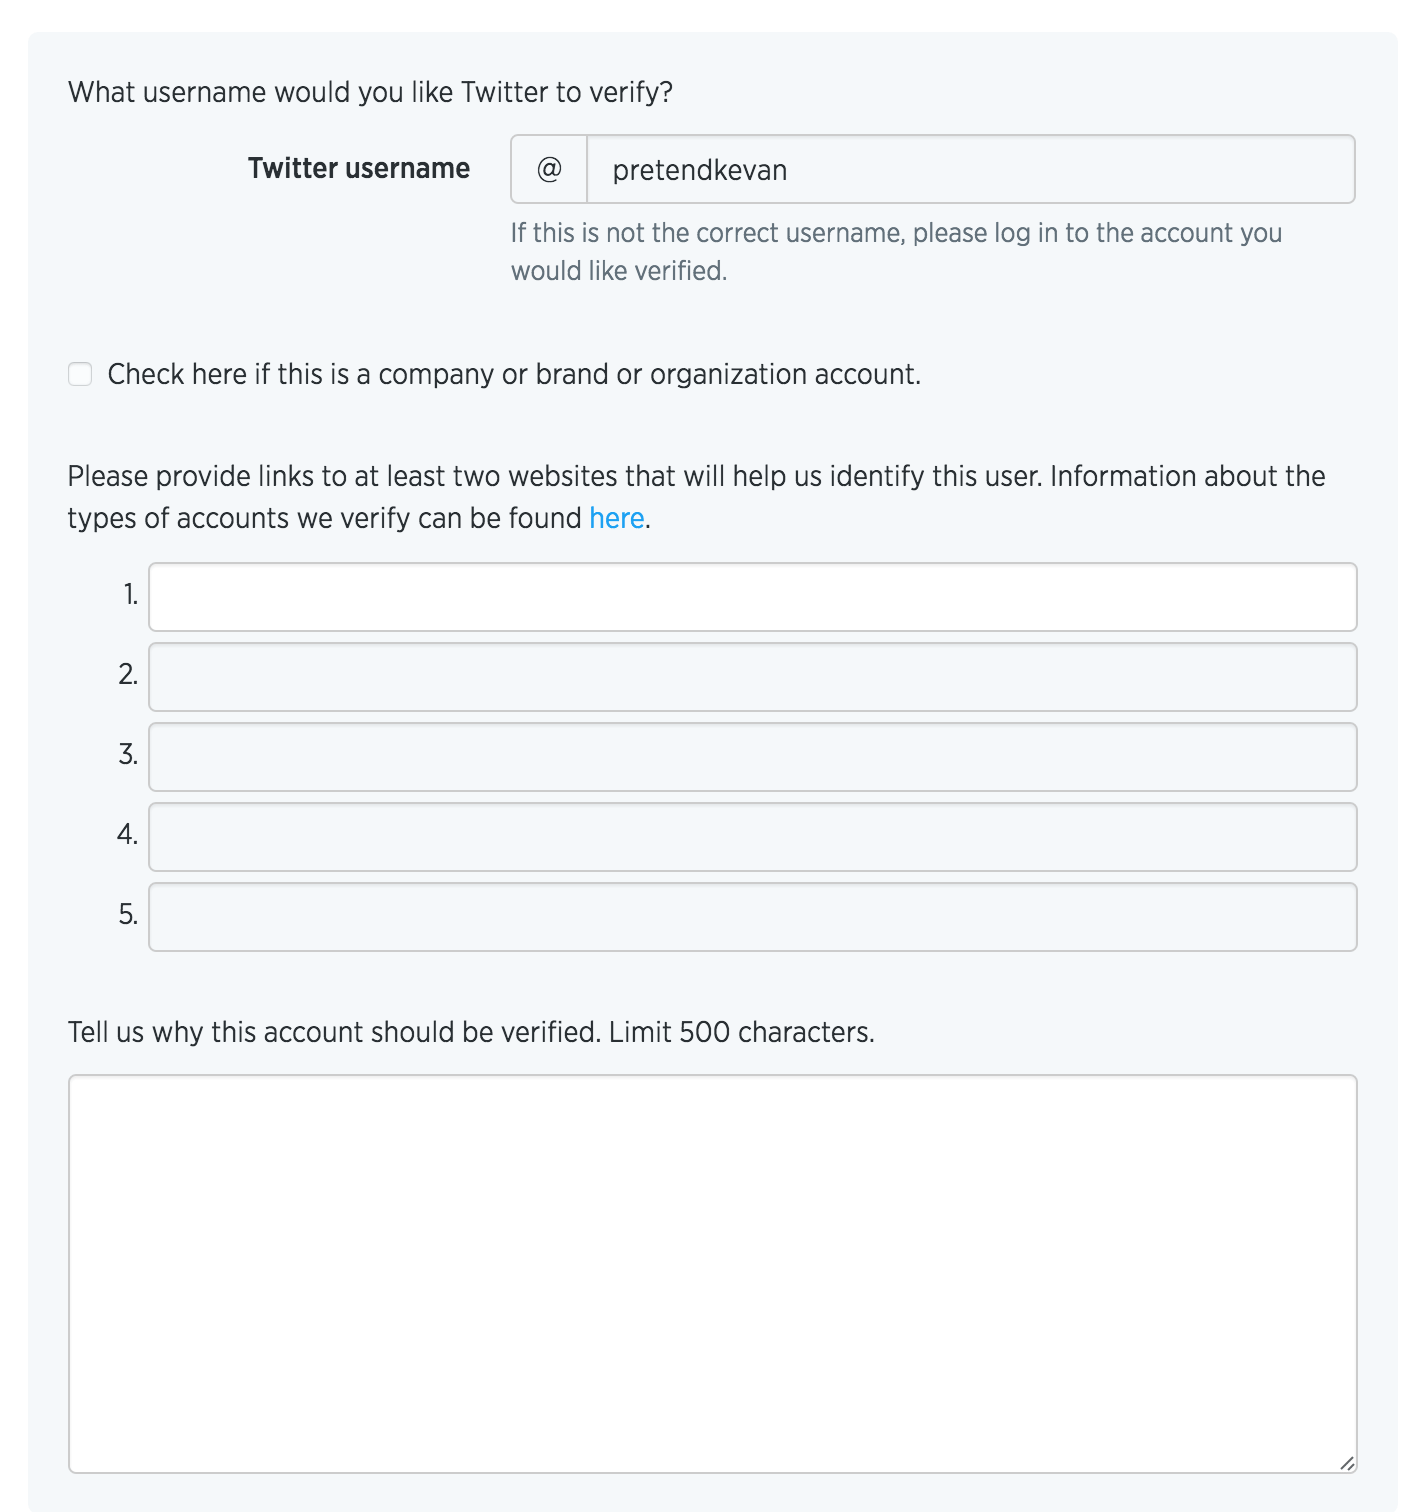 request-twitter-verificaton-form-fields